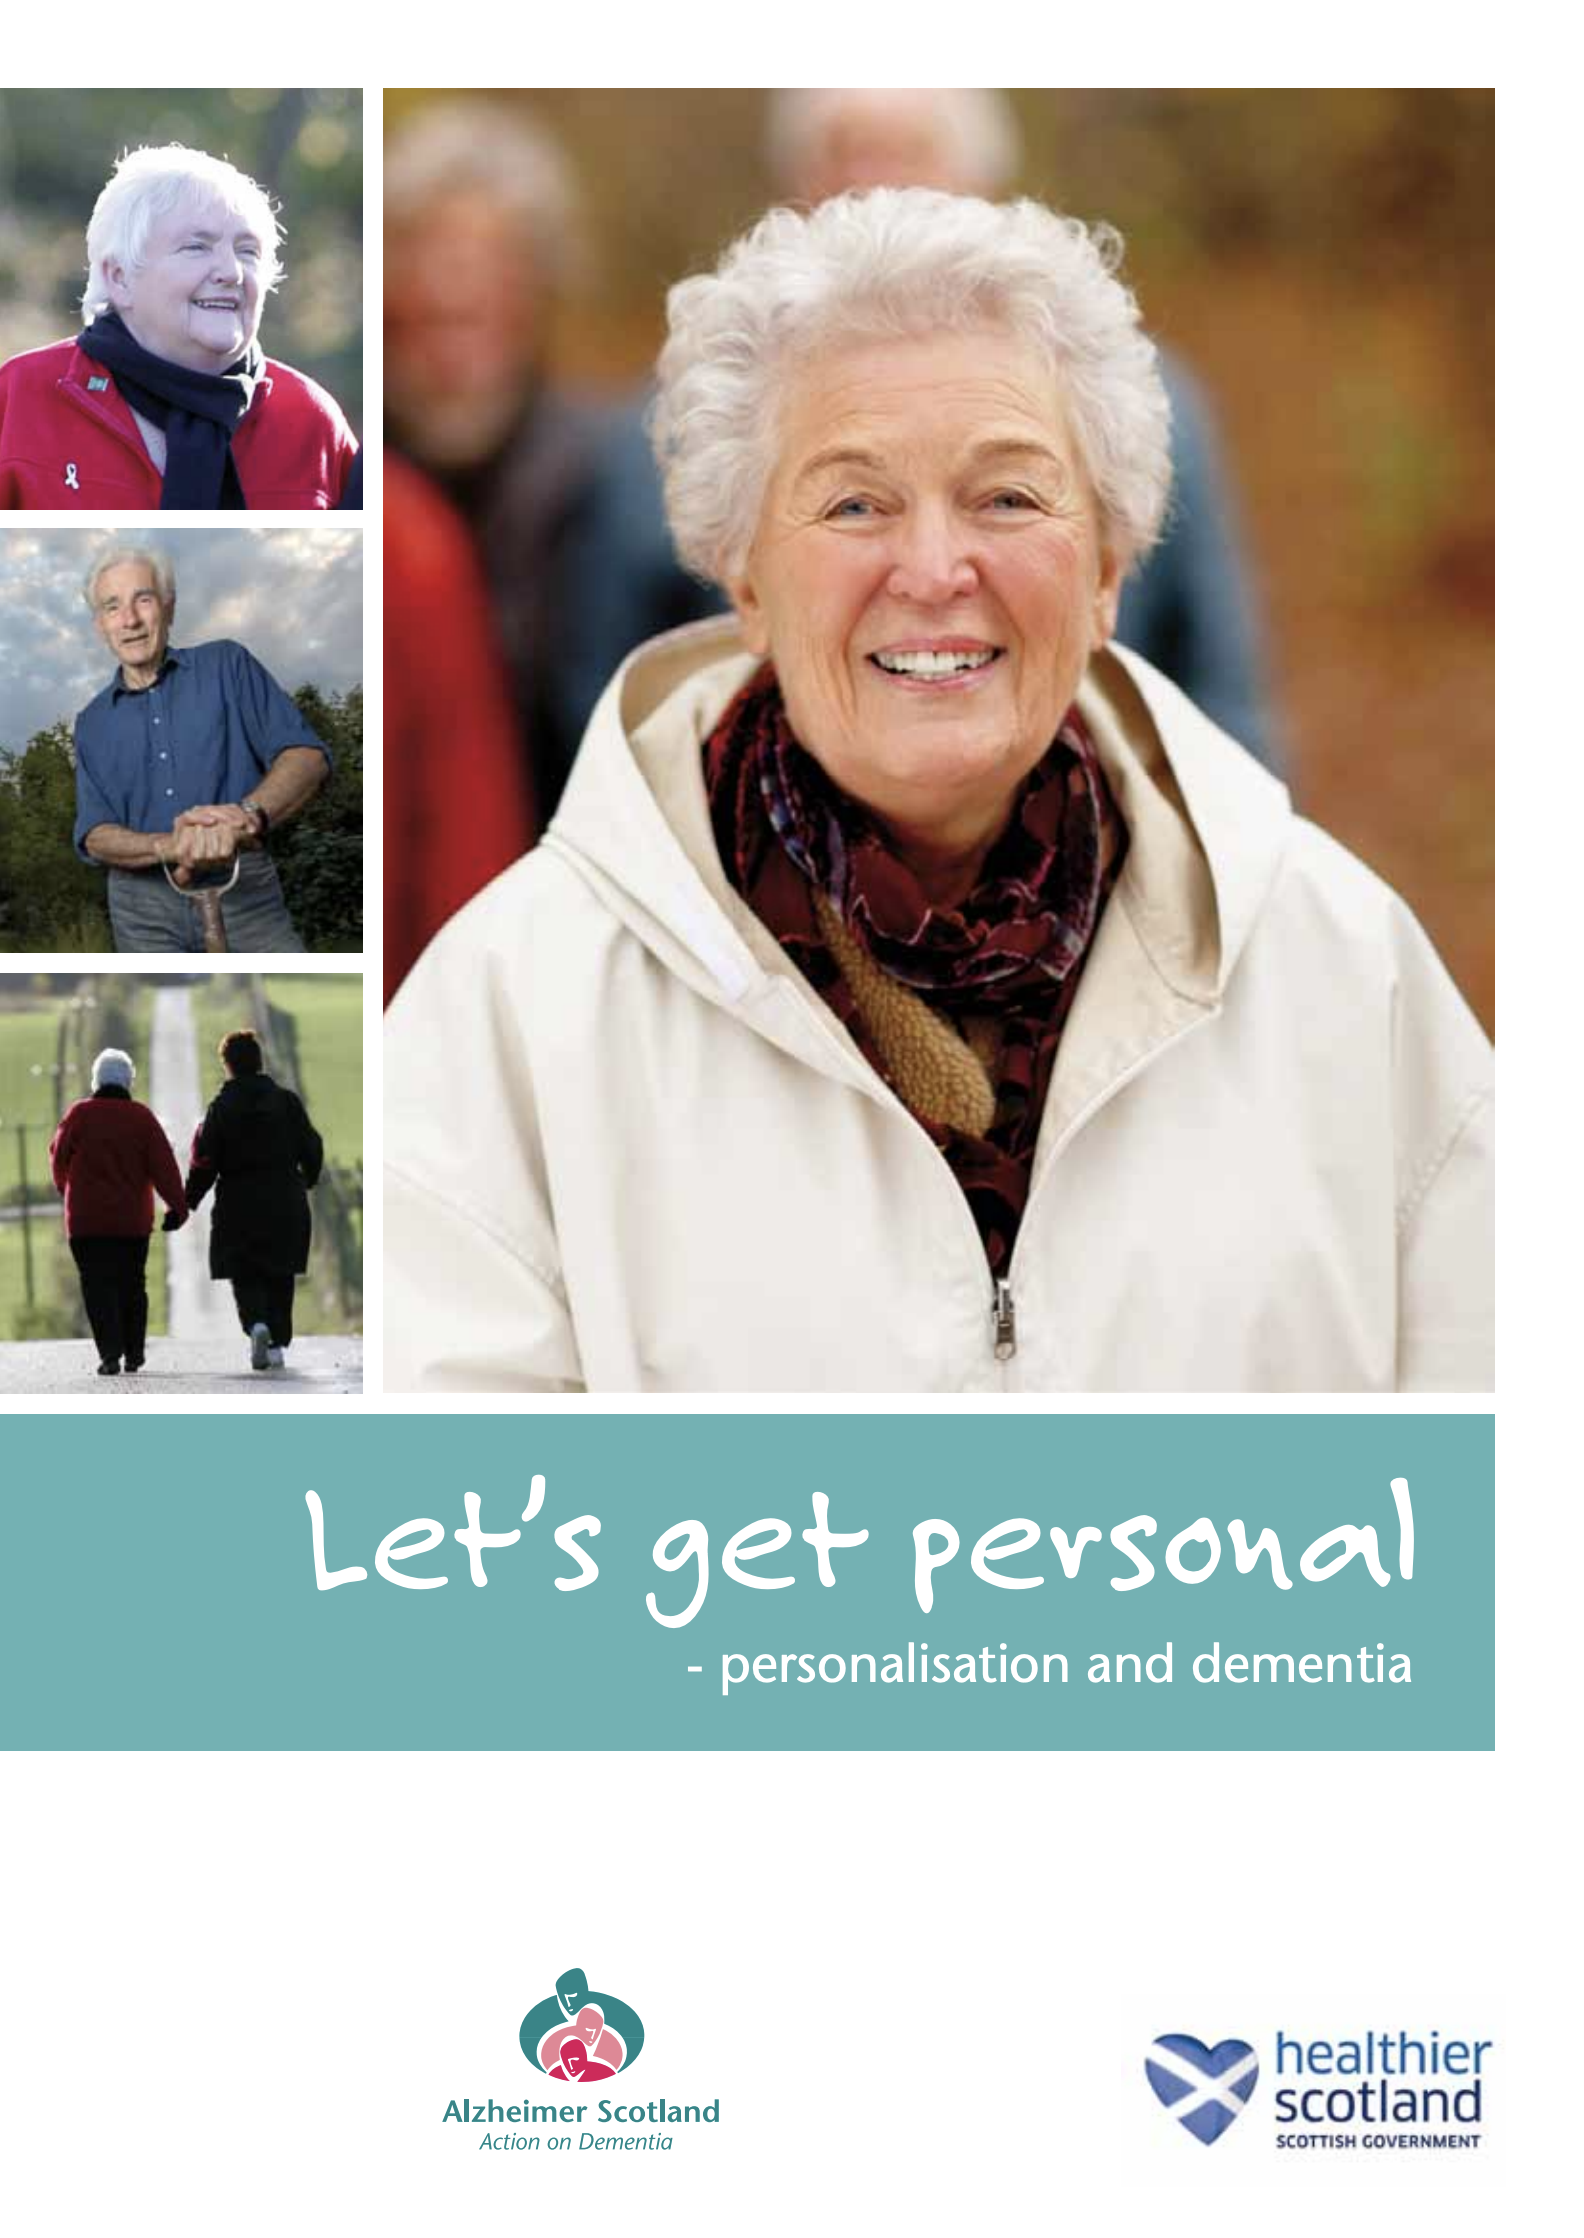 「Let's get personal: personalisation and dementia」